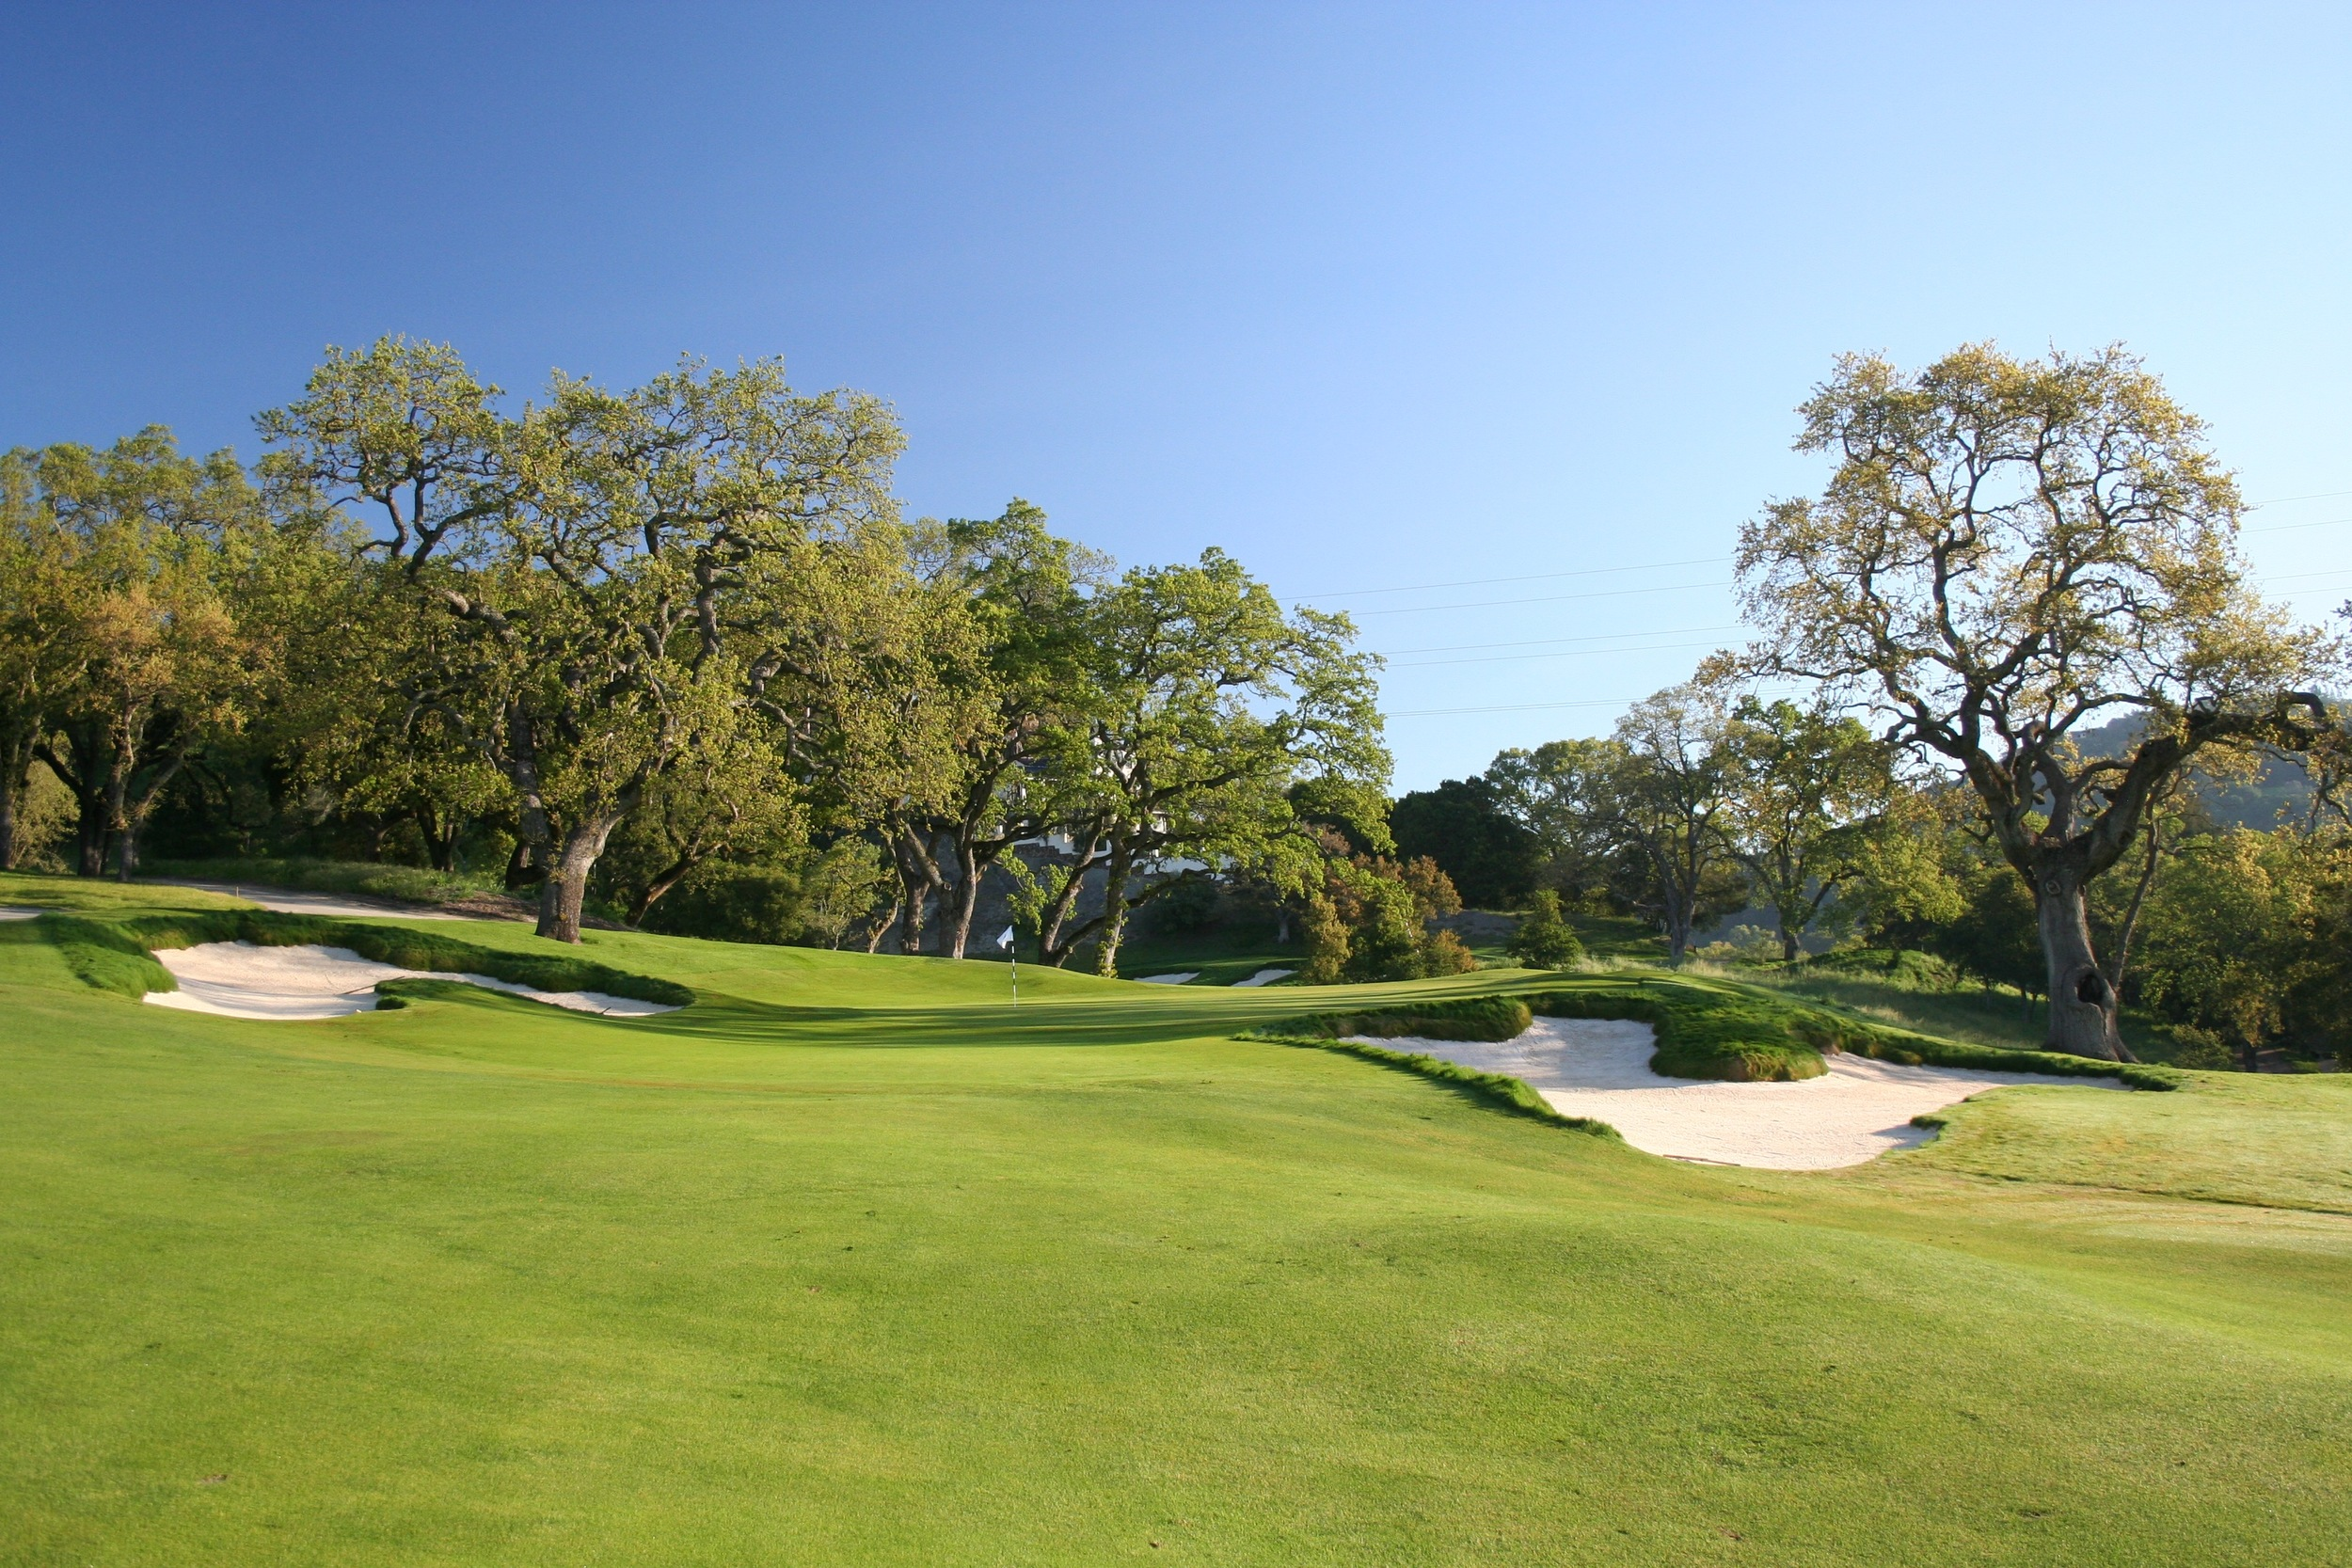 The second green was once surrounded by trees and containment mounding added much after the course's original design. By removing non-indigenous trees and the mass of earth back and right, the view from one of the best spots on the course has been opened up 180 degrees, including a look through to the distant 4th green and bunkers.